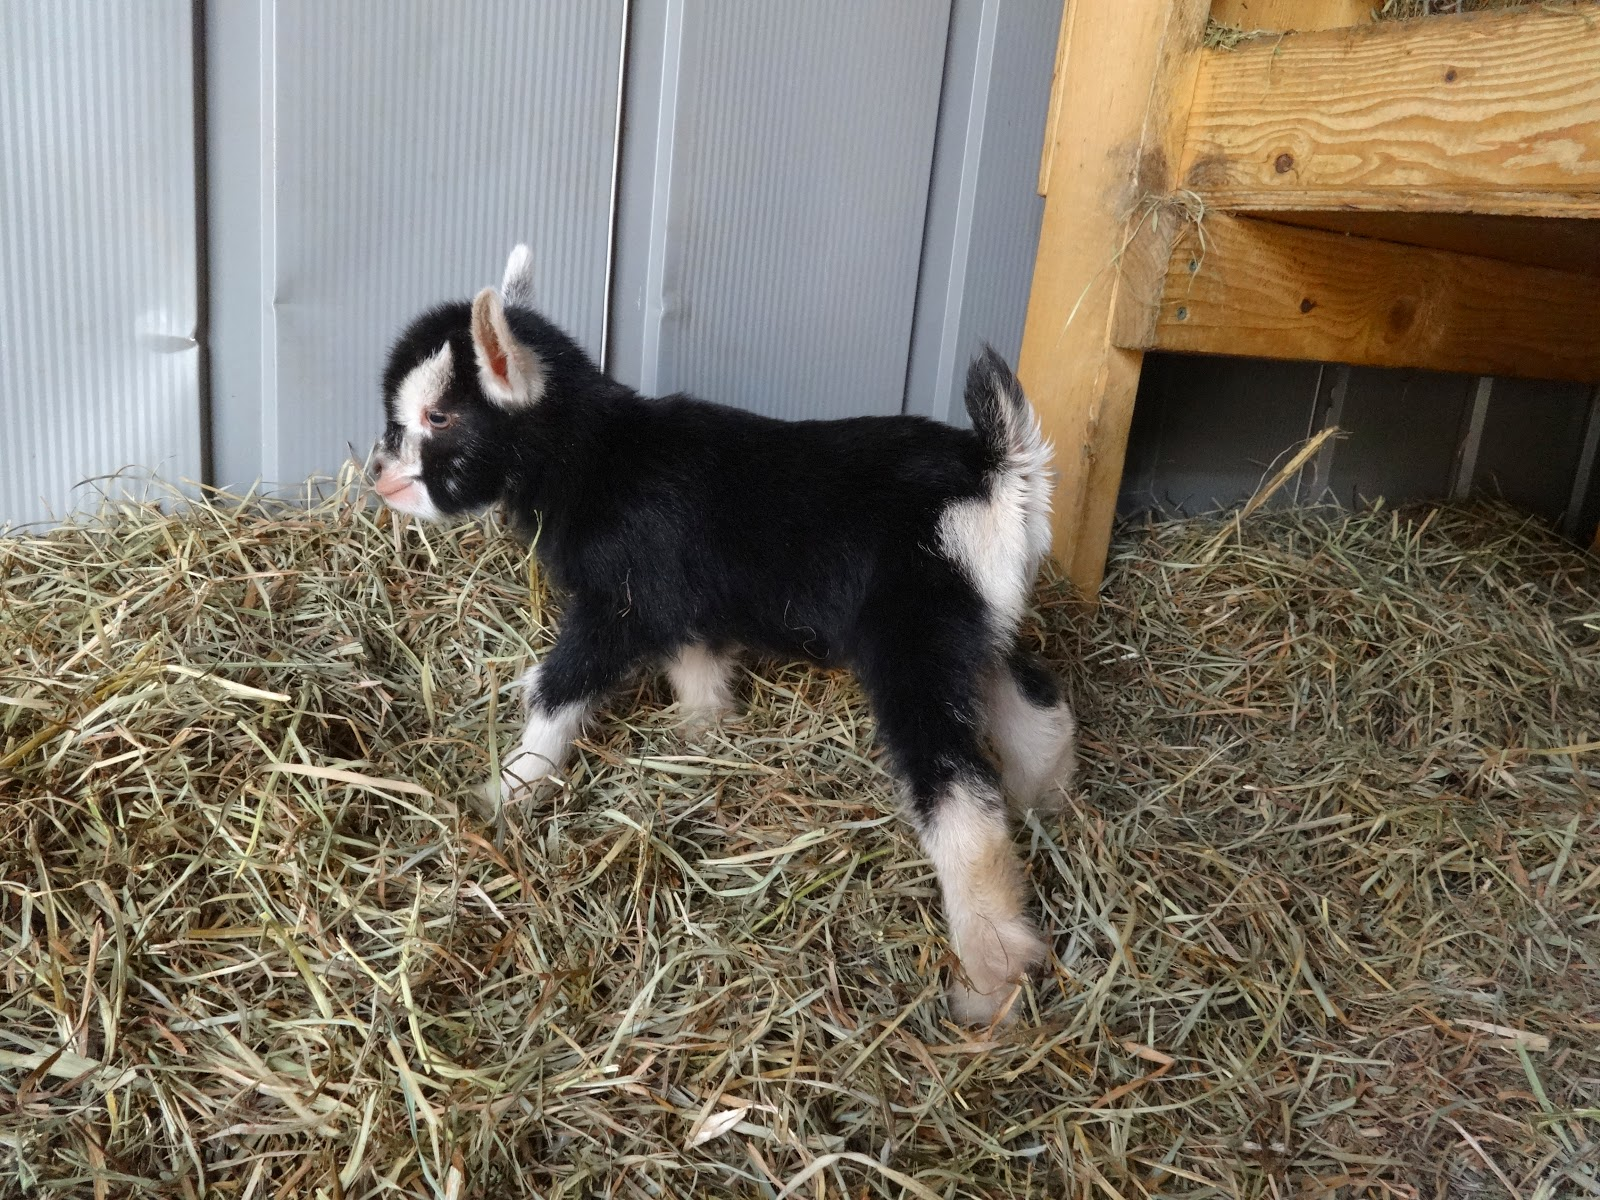 Goats For Sale - Nigerian Dwarf Goats | Pittsburgh Pennsylvania